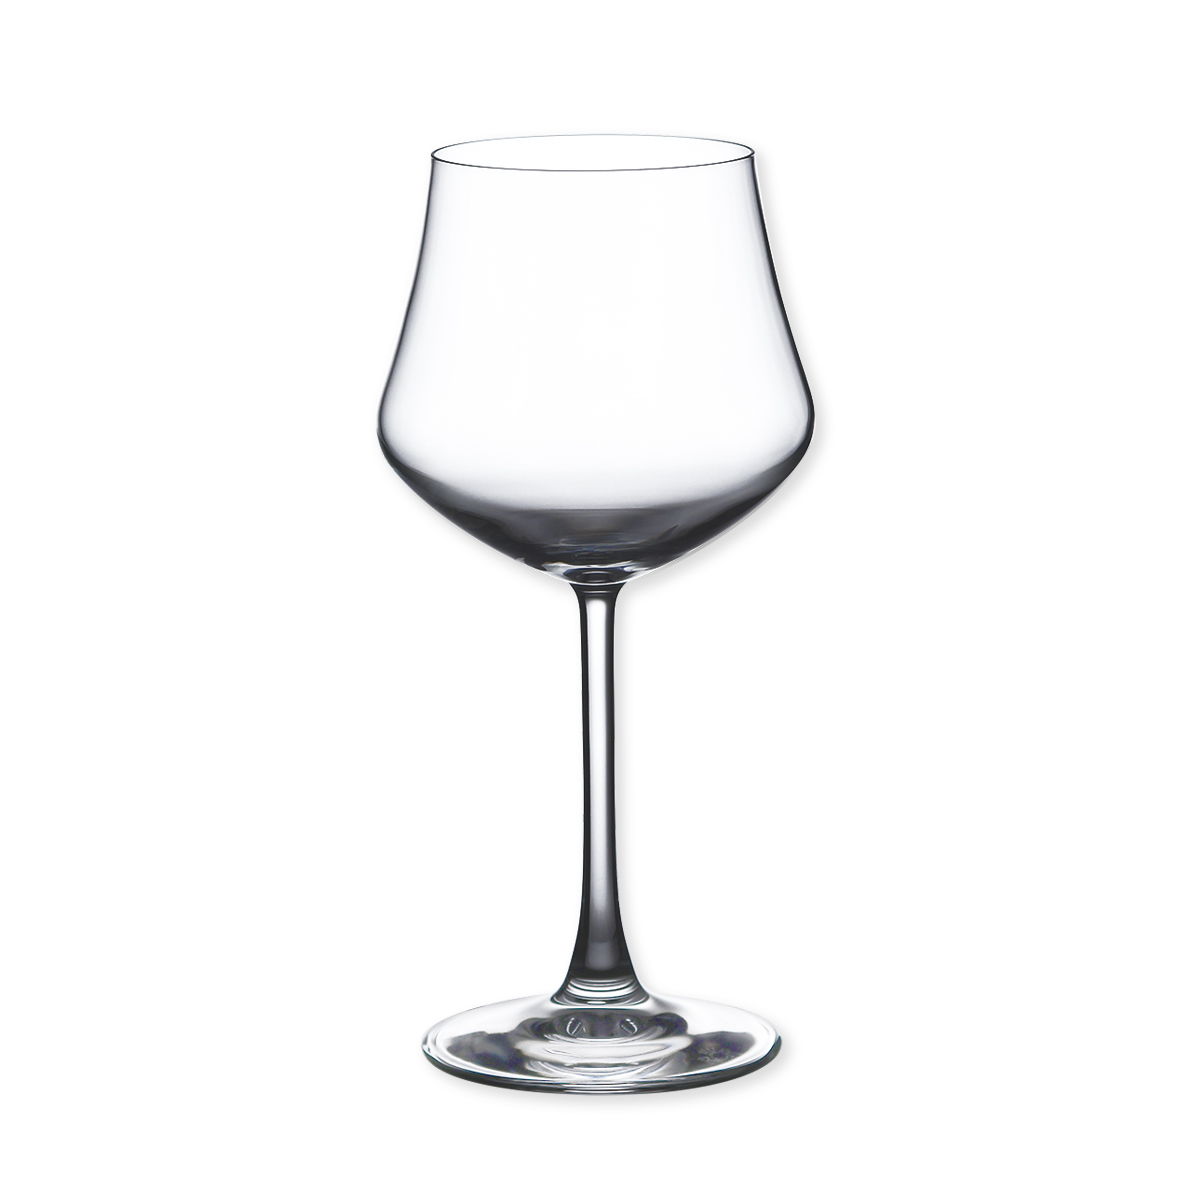 Photo De Verre De Vin Verre à Vin 43cl